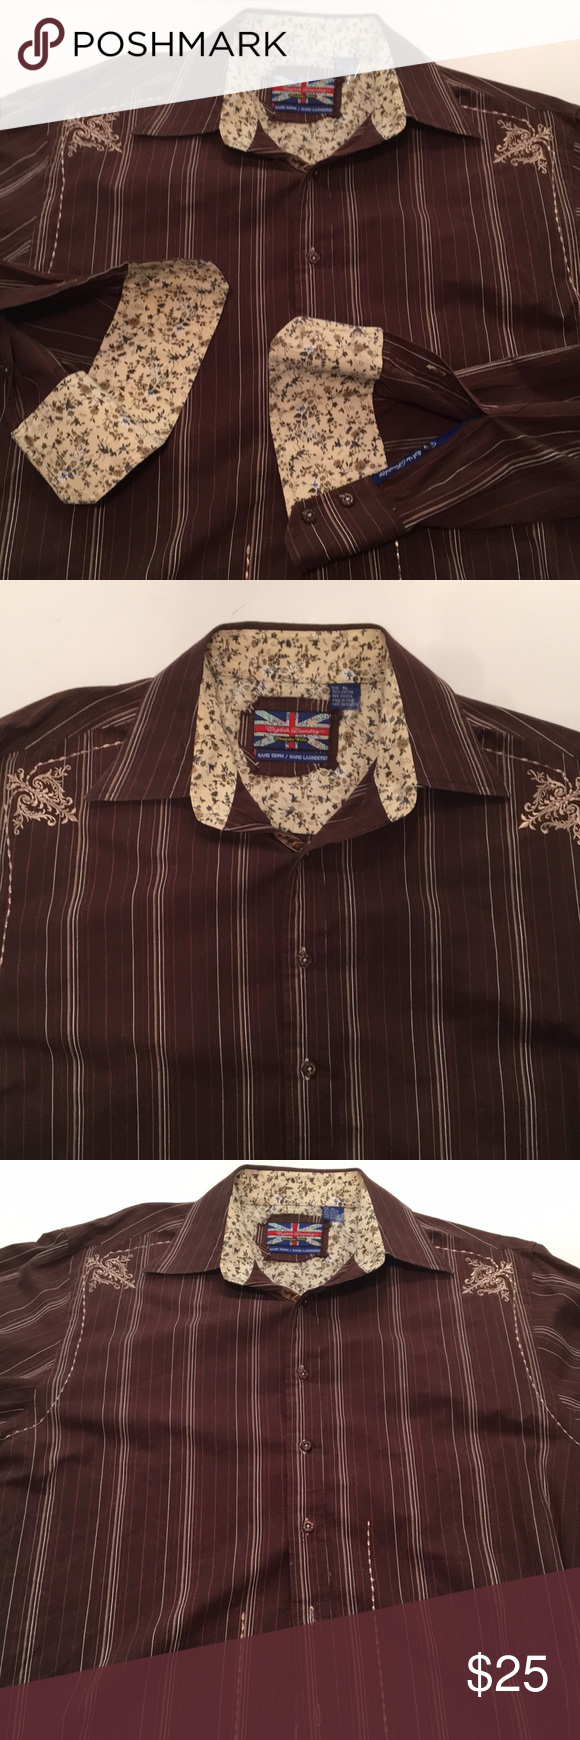 English Laundry Men S Embroidered Shirt Xl Embroidered Shirt Laundry Shirts Womens Fashion [ 1740 x 580 Pixel ]